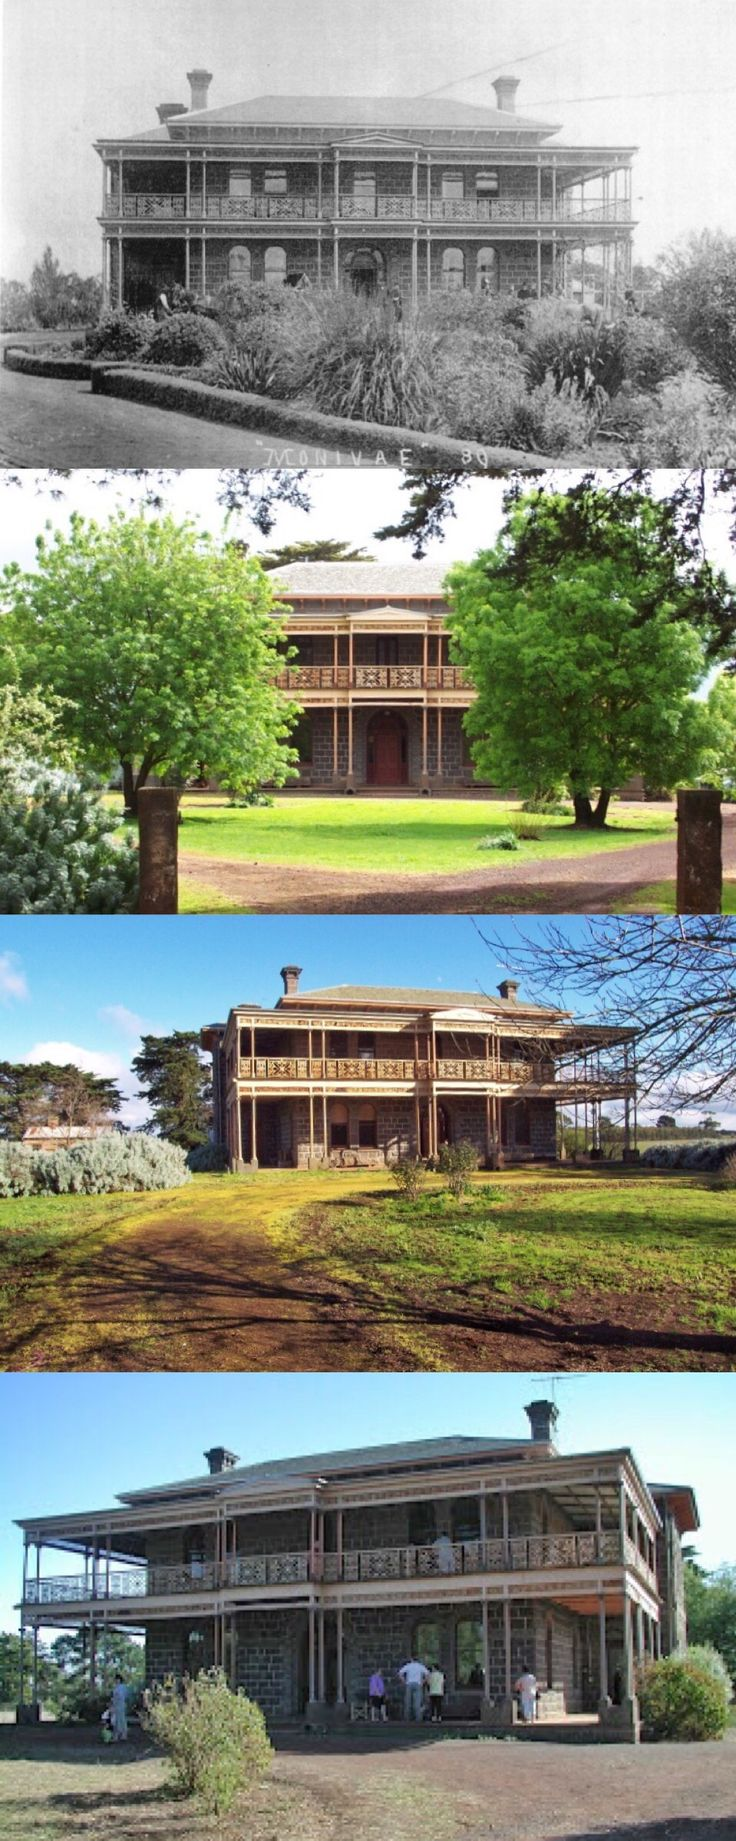 Monivae Homestead, Hamilton Sth (310 km SW of Melbourne). The land was taken up by Acheson ffrench in c1839. He built a large homestead, but following his death in 1870 it was bought by James Thomson, a Scot, who built (on a different site) the present bluestone Italianate mansion, designed by English-born William Smith. Thomson lived there with his family of 11 children until his death in 1946, after which it was briefly a boarding school. There are plans to restore it as a tourist…